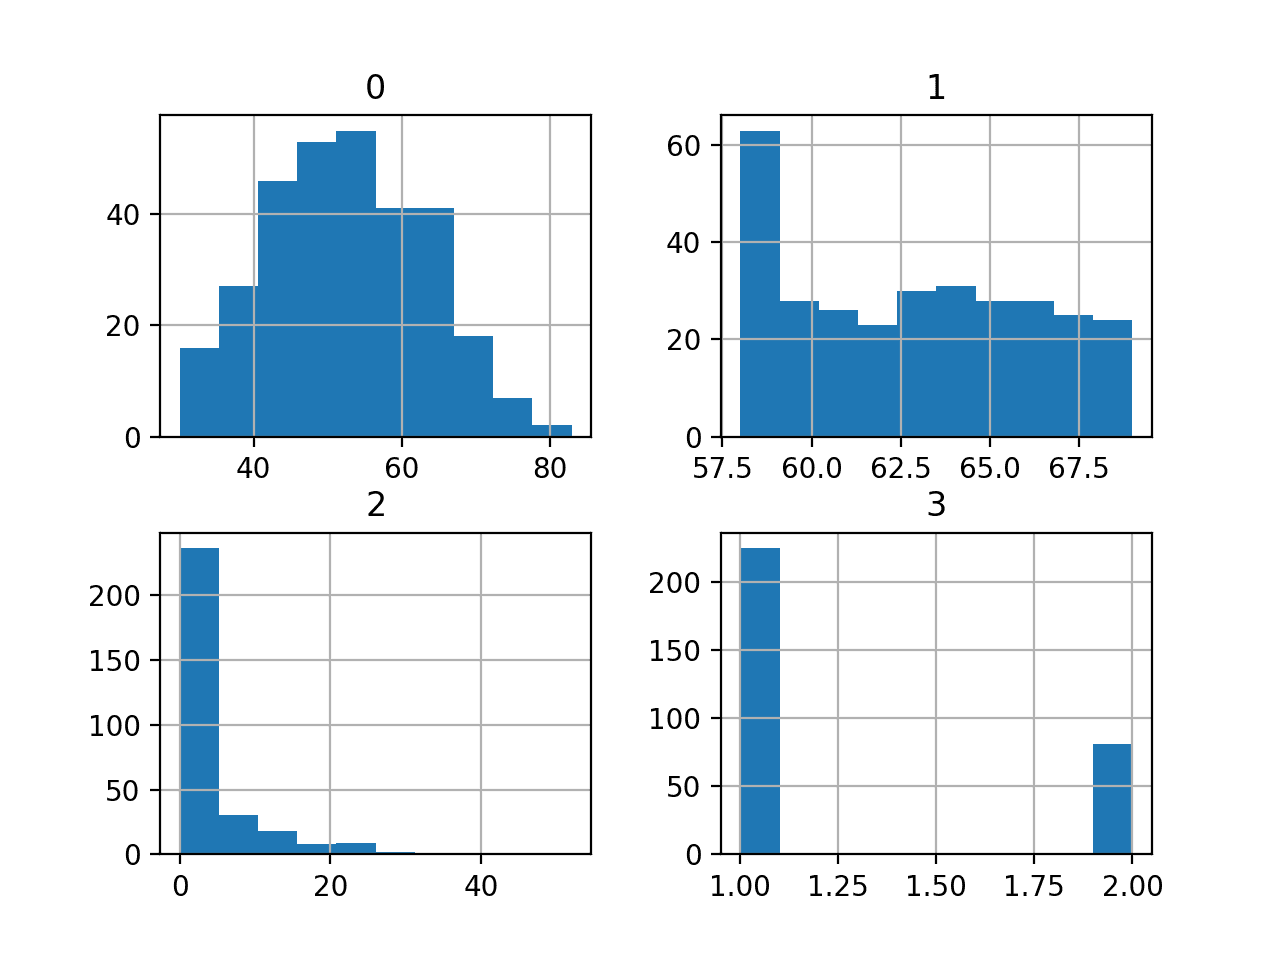 Histograms of the Haberman Breast Cancer Survival Classification Dataset